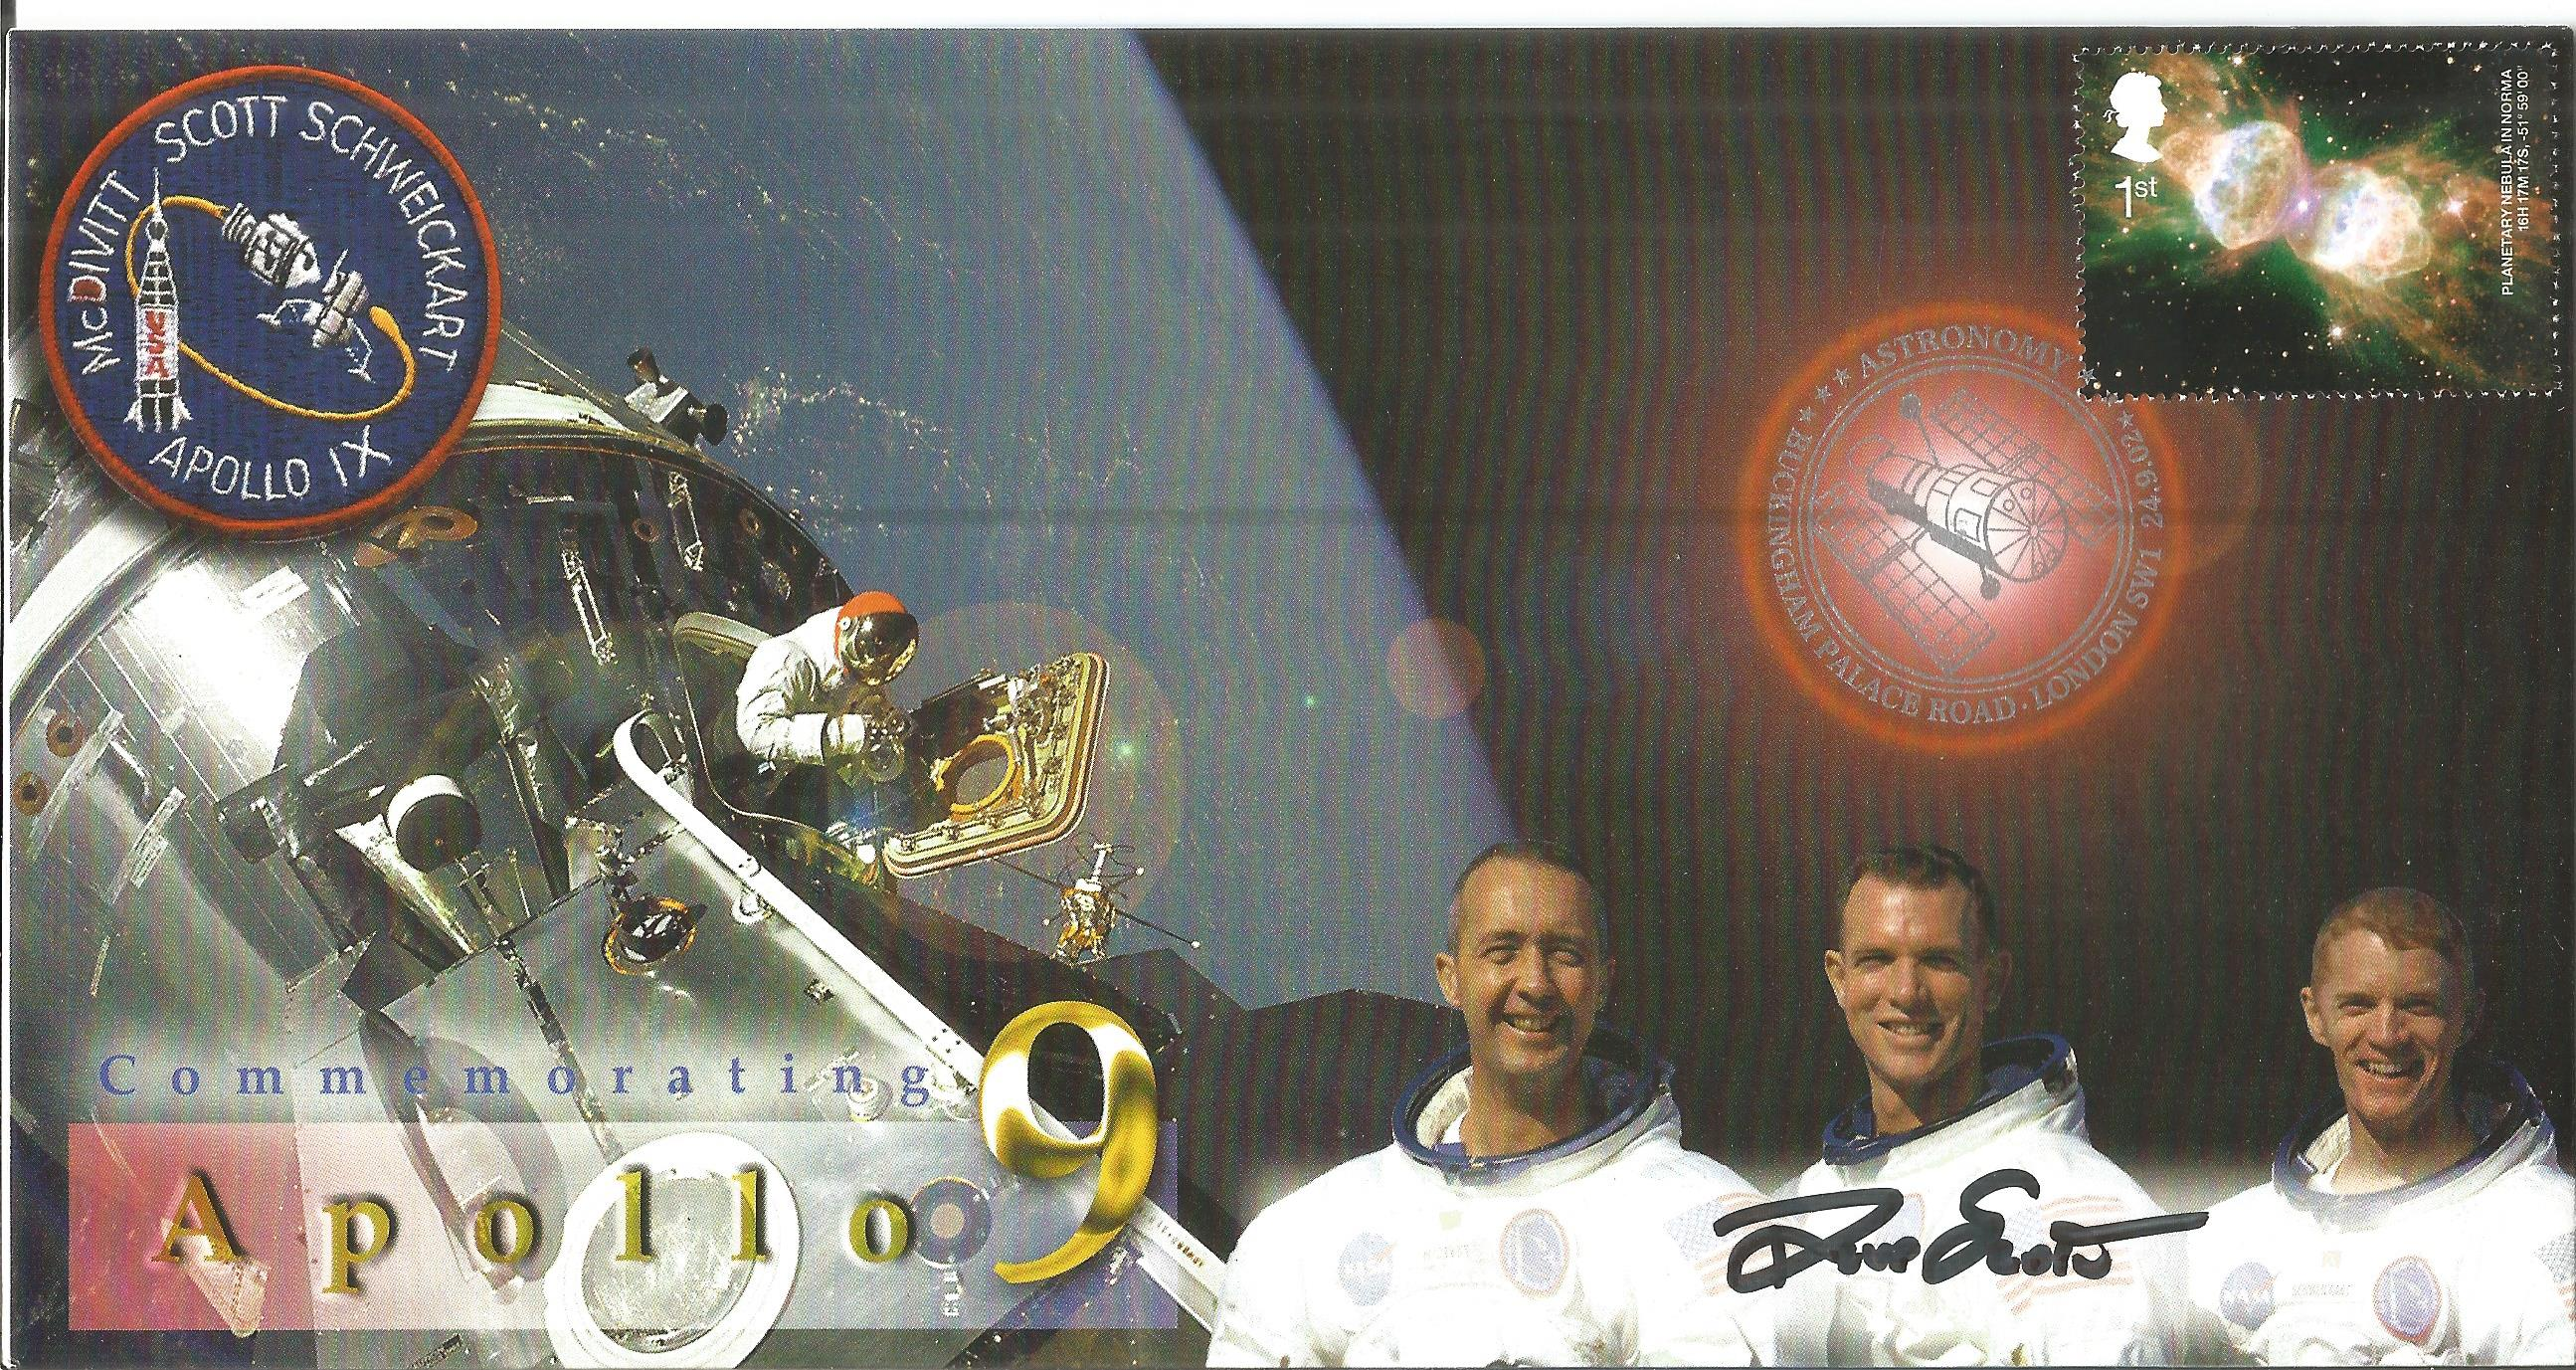 Space Moonwalker Dave Scott NASA Astronaut signed 2001 Apollo 15 Limited Edition cover. Good